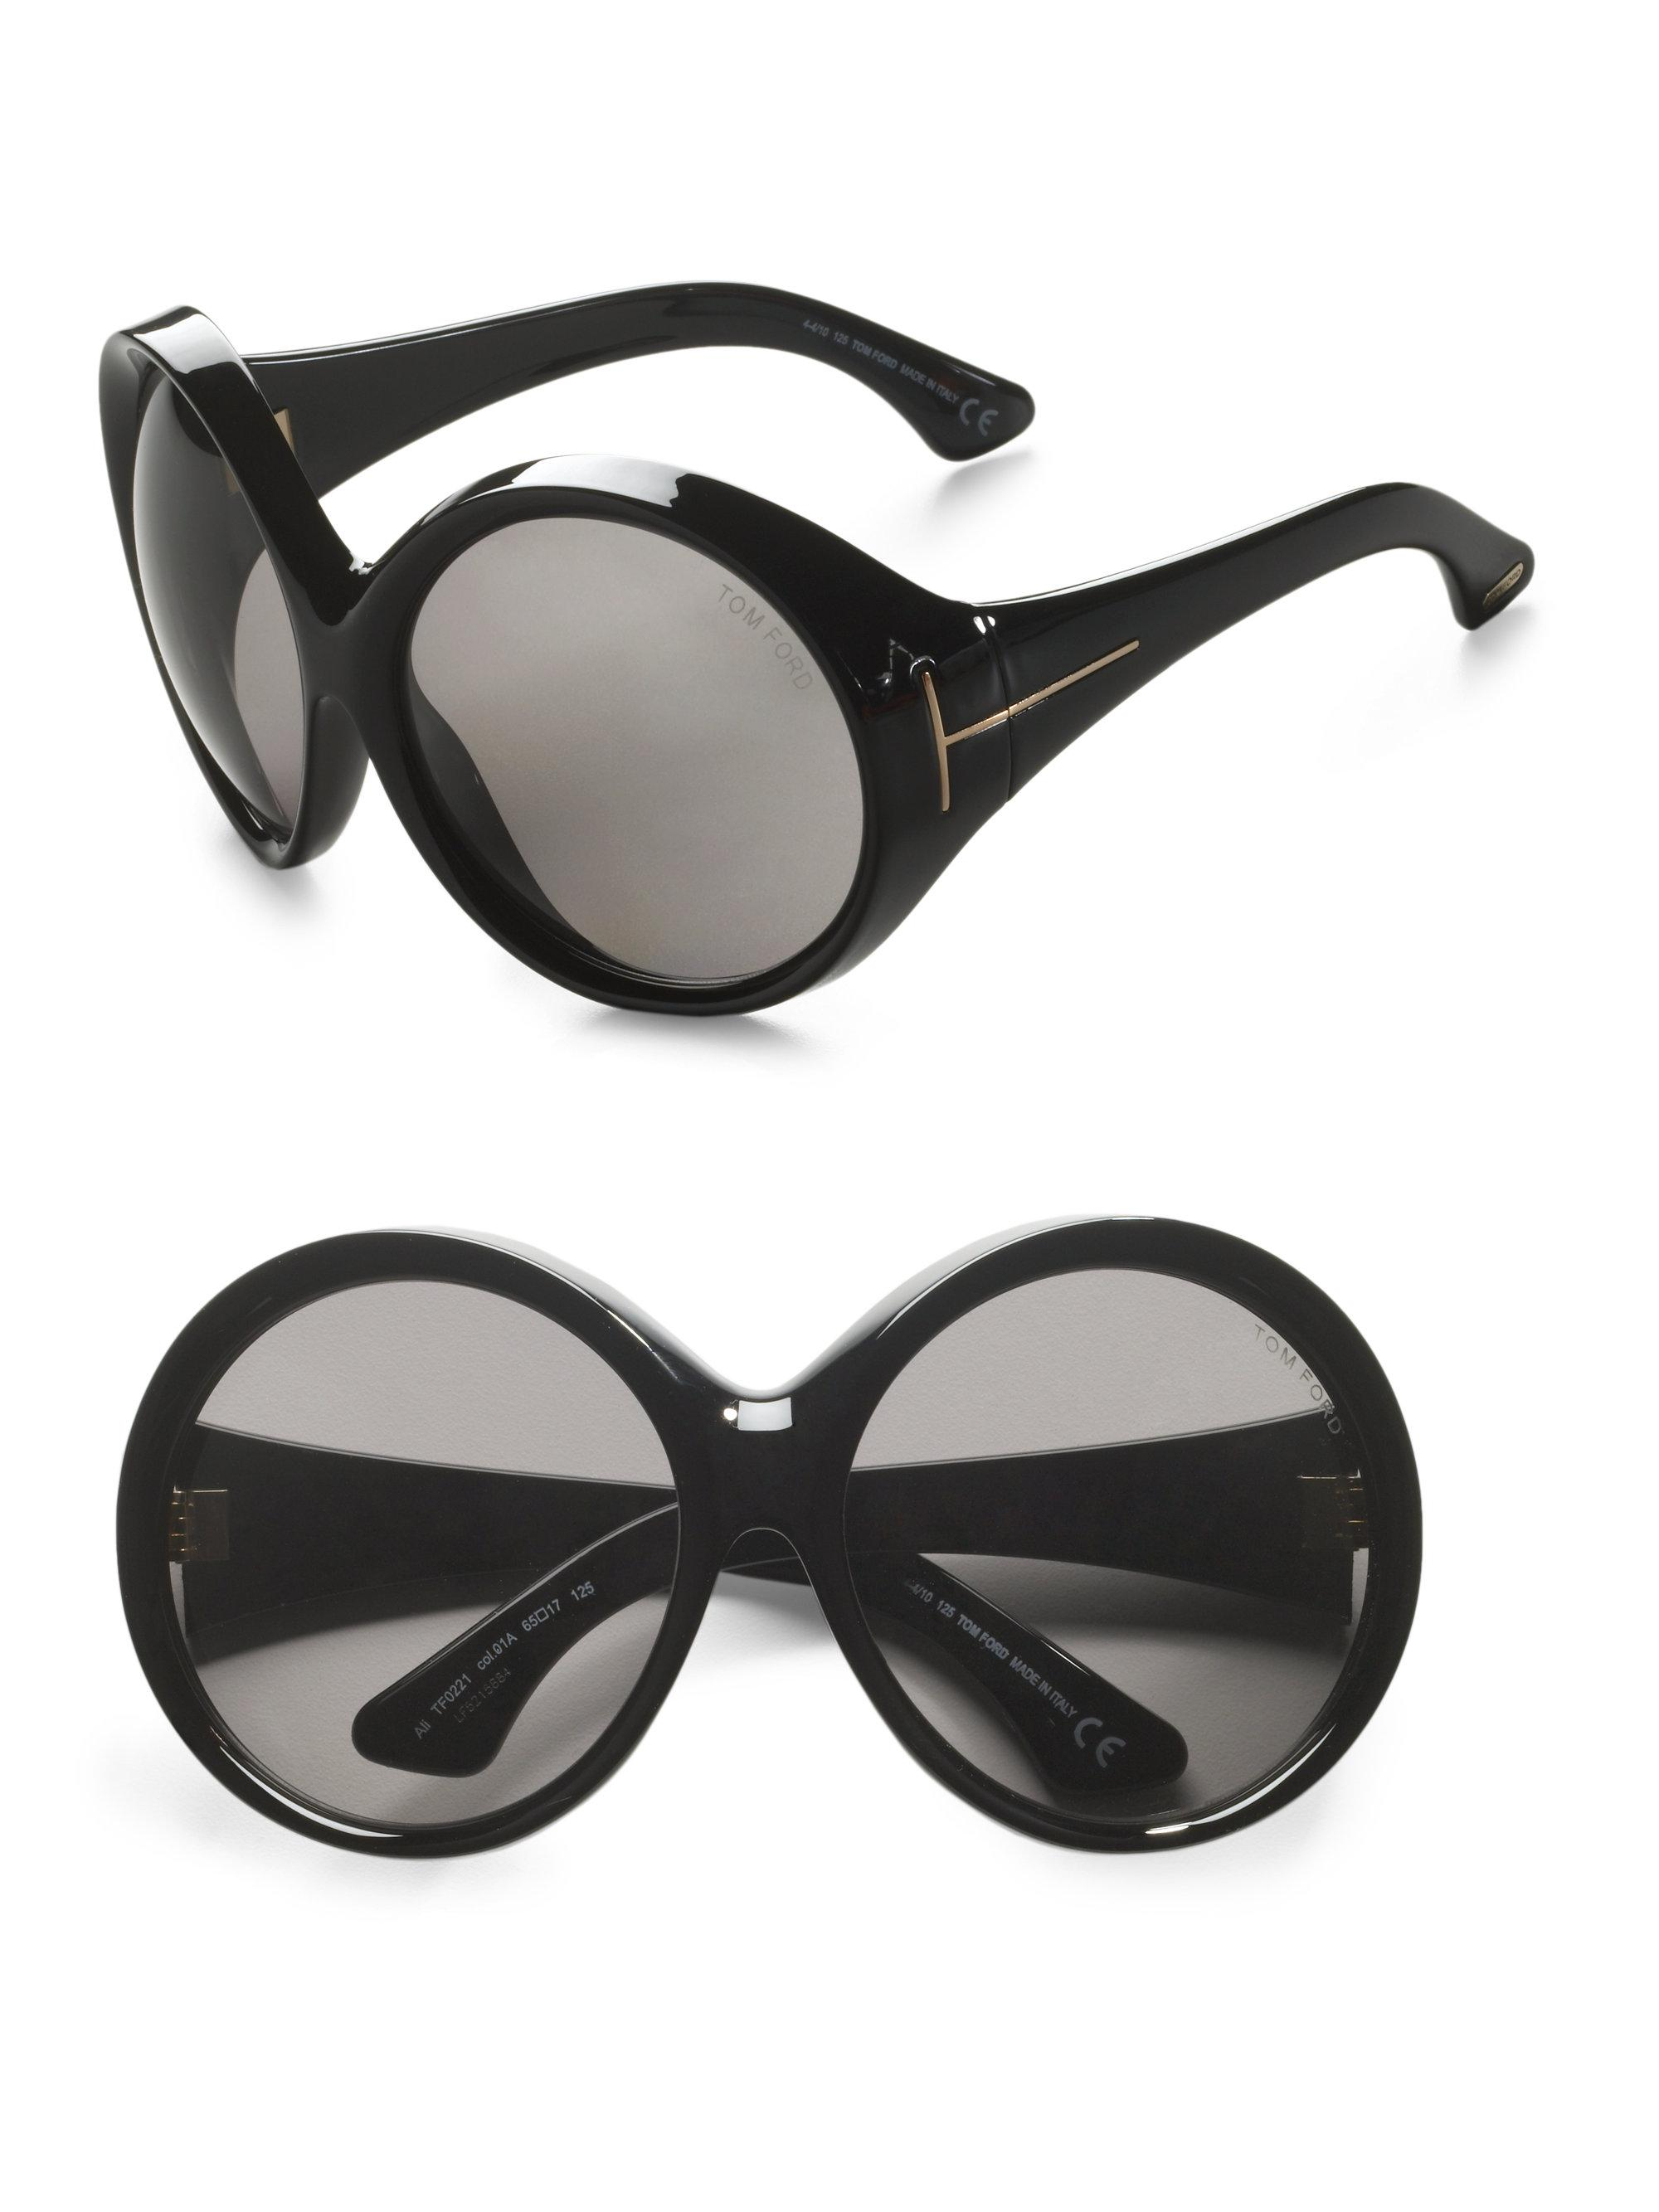 284d0bb965 Tom Ford Limited Edition Ali Sunglasses in Black - Lyst